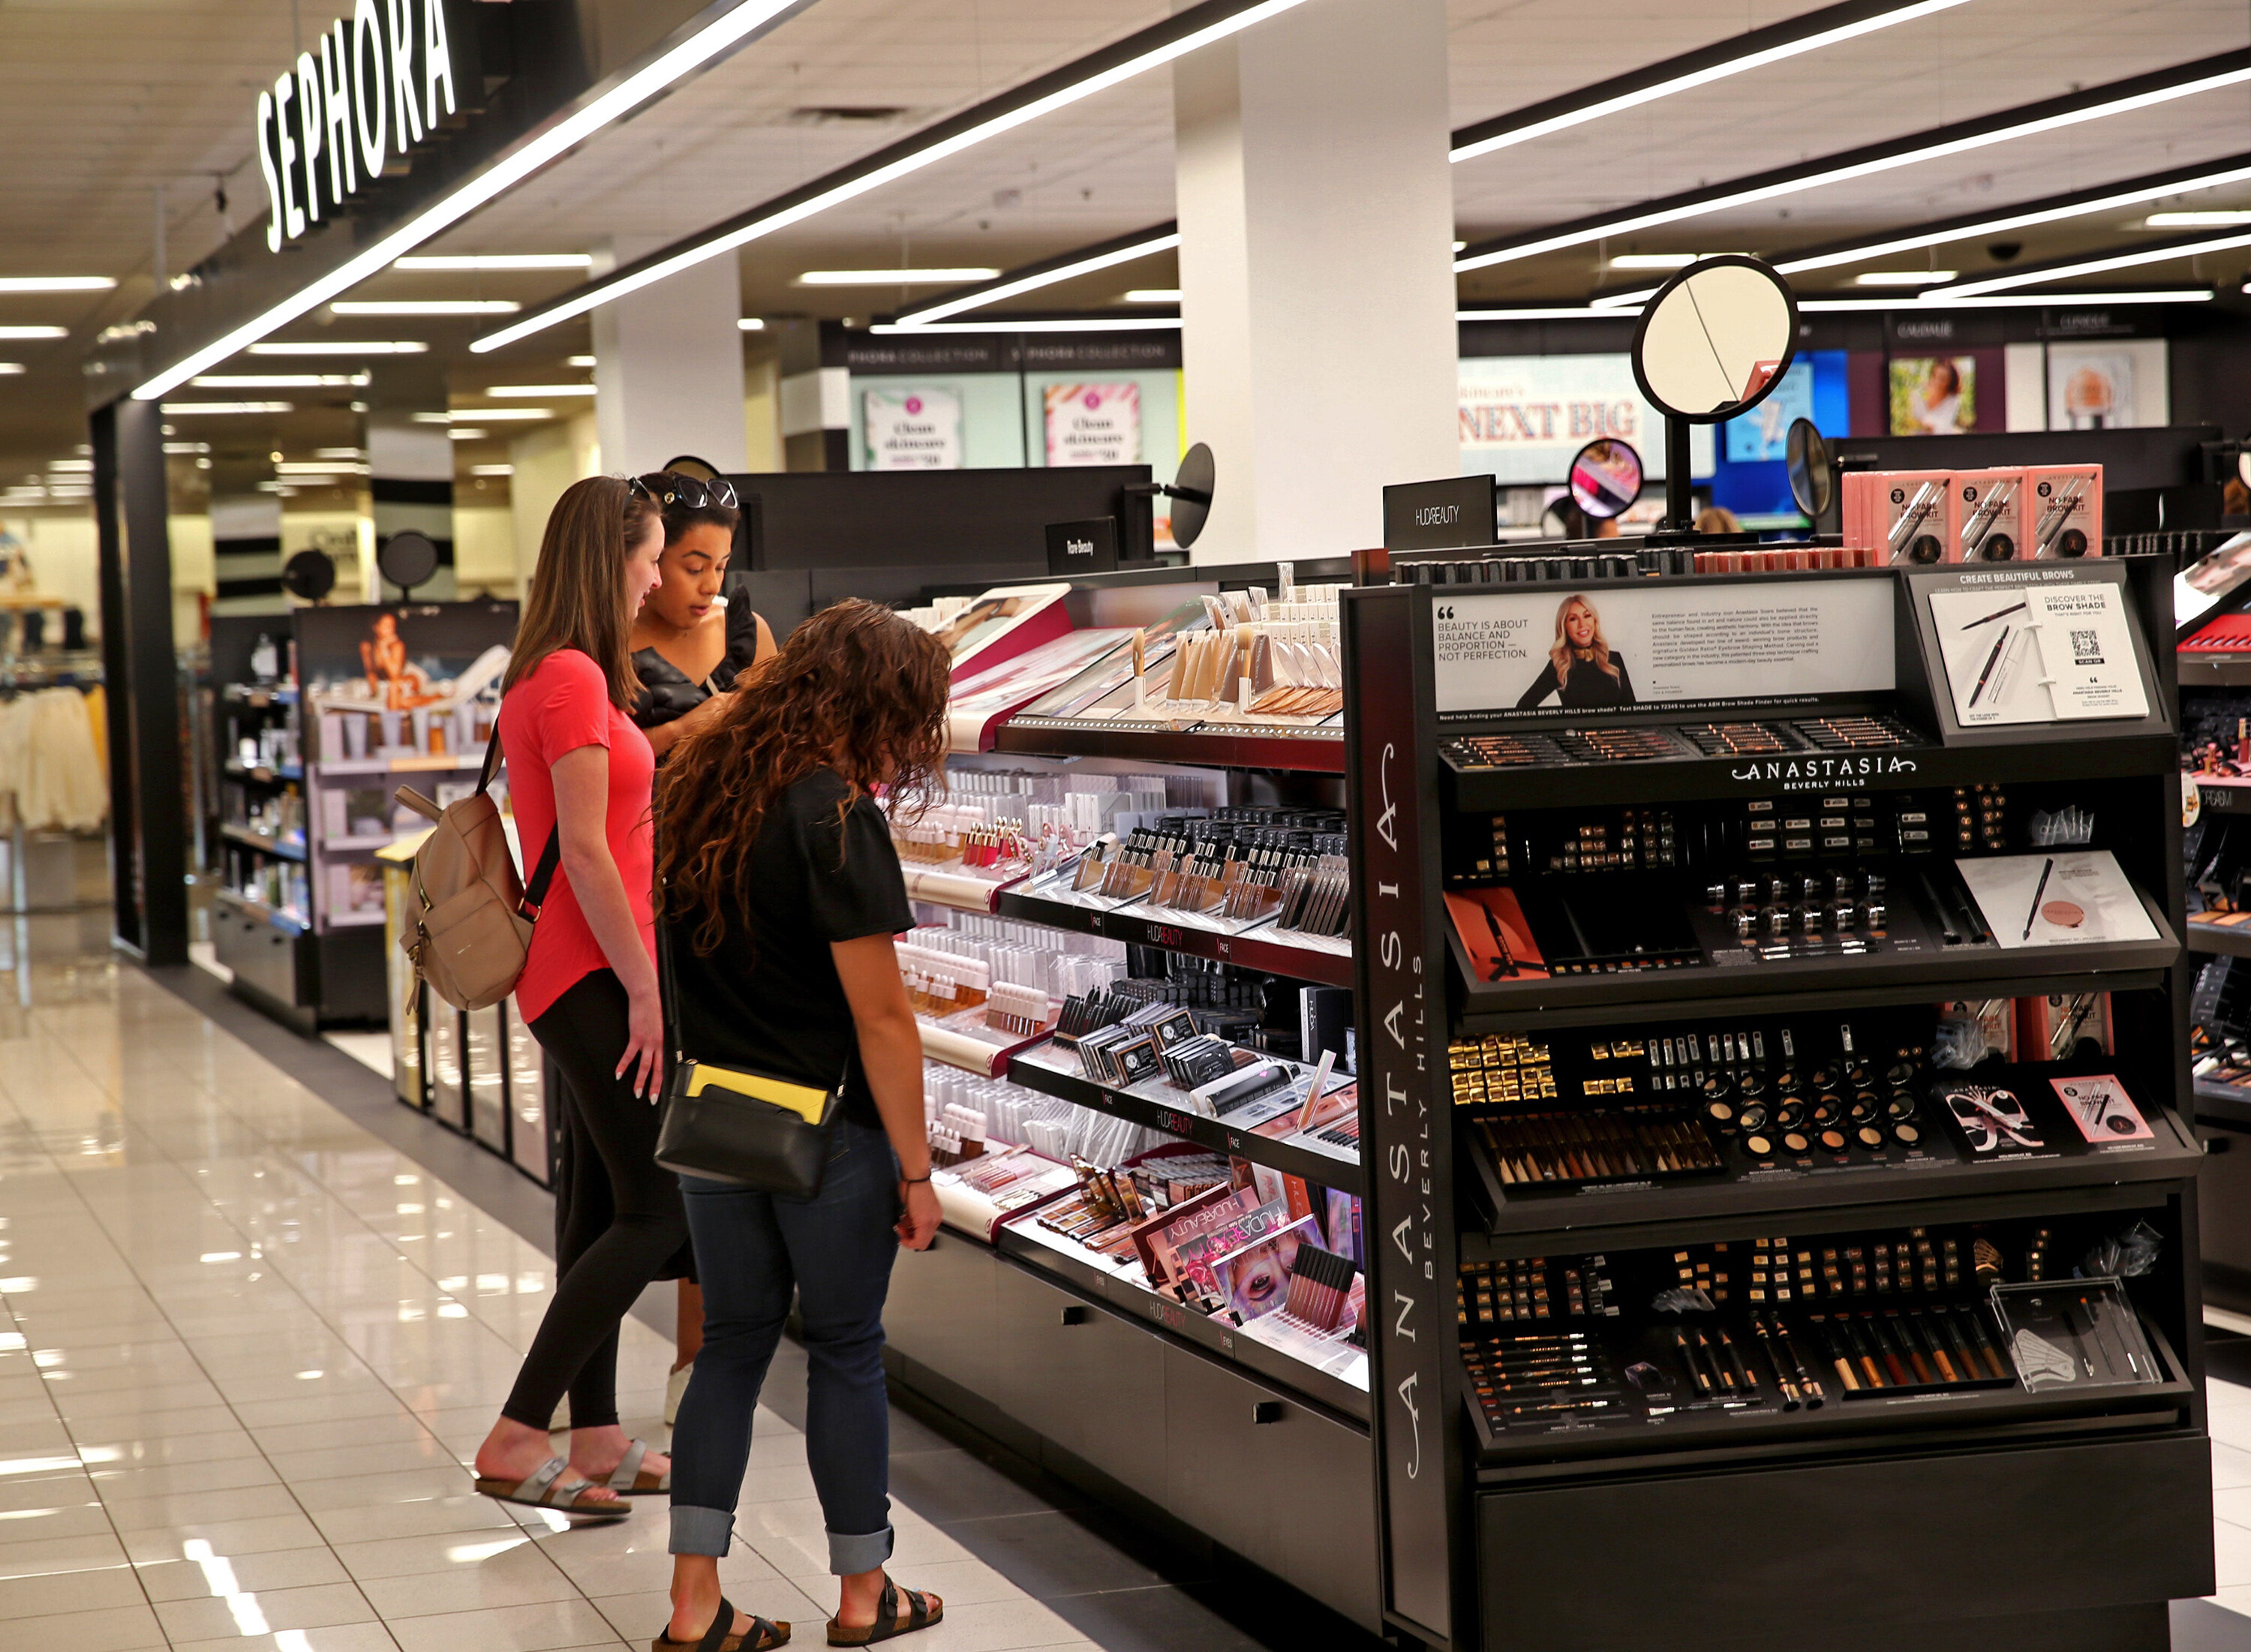 Starting this month, you can shop at Sephora in some Kohl's stores